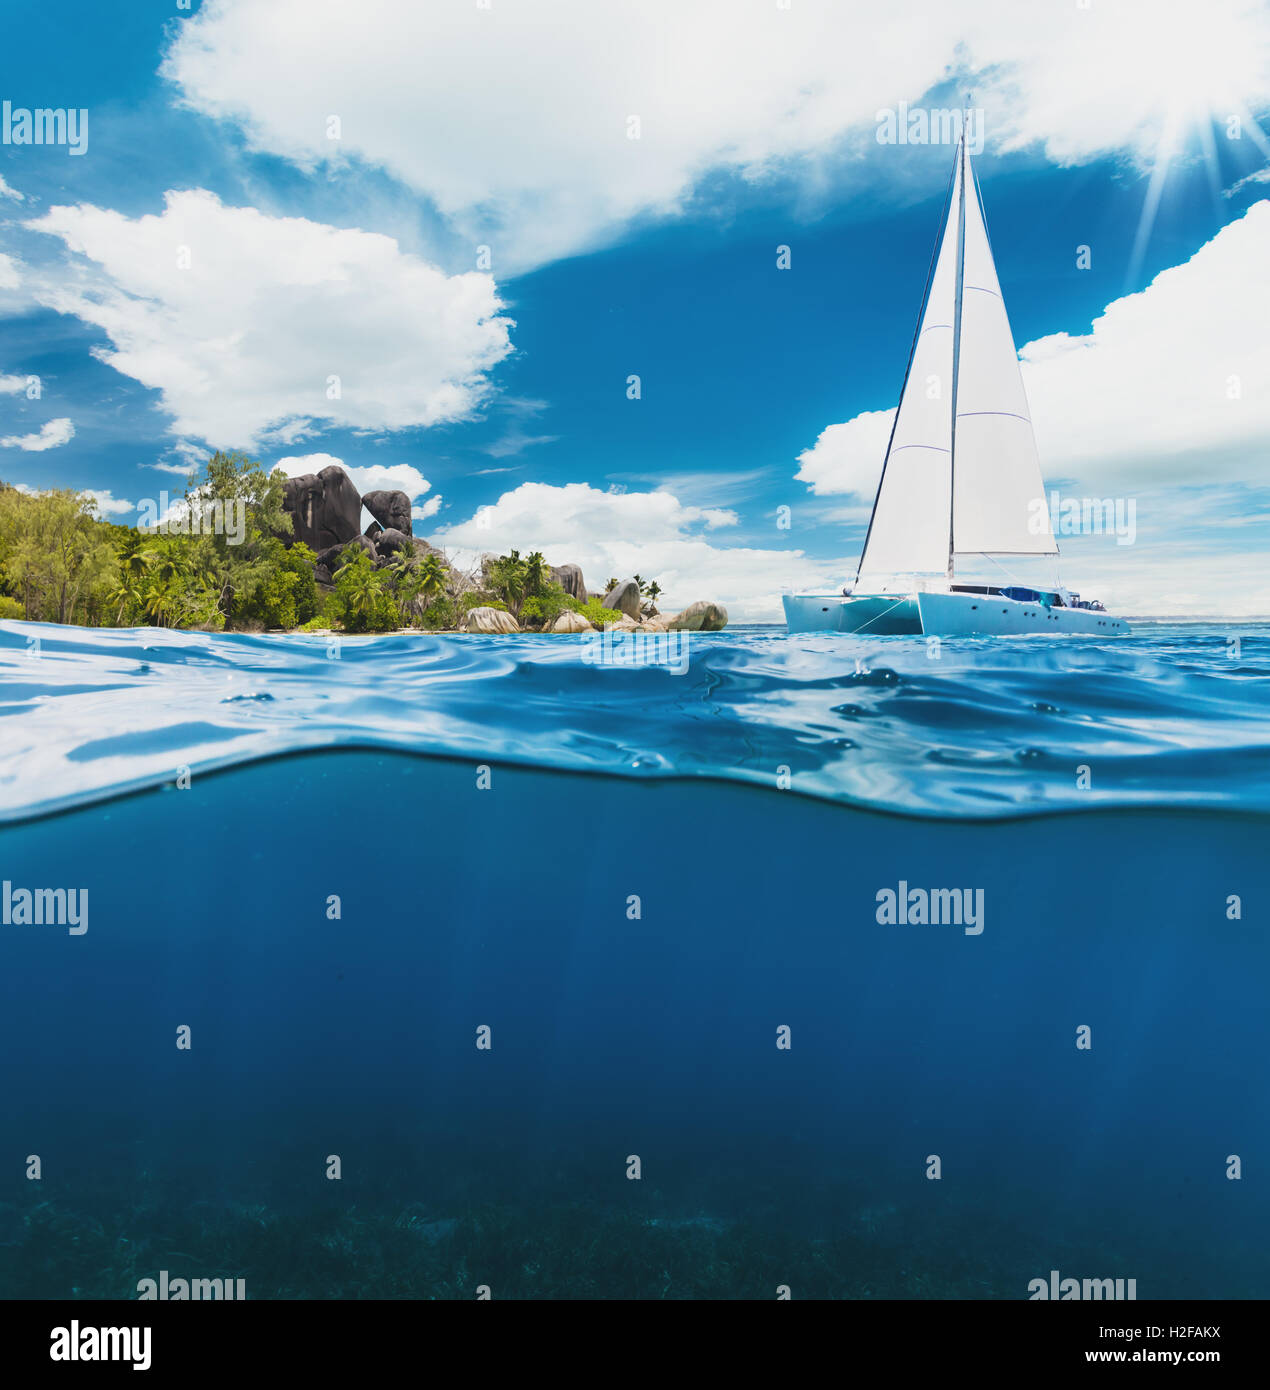 Catamaran boat sailing next to tropical island in Seychelles Stock Photo